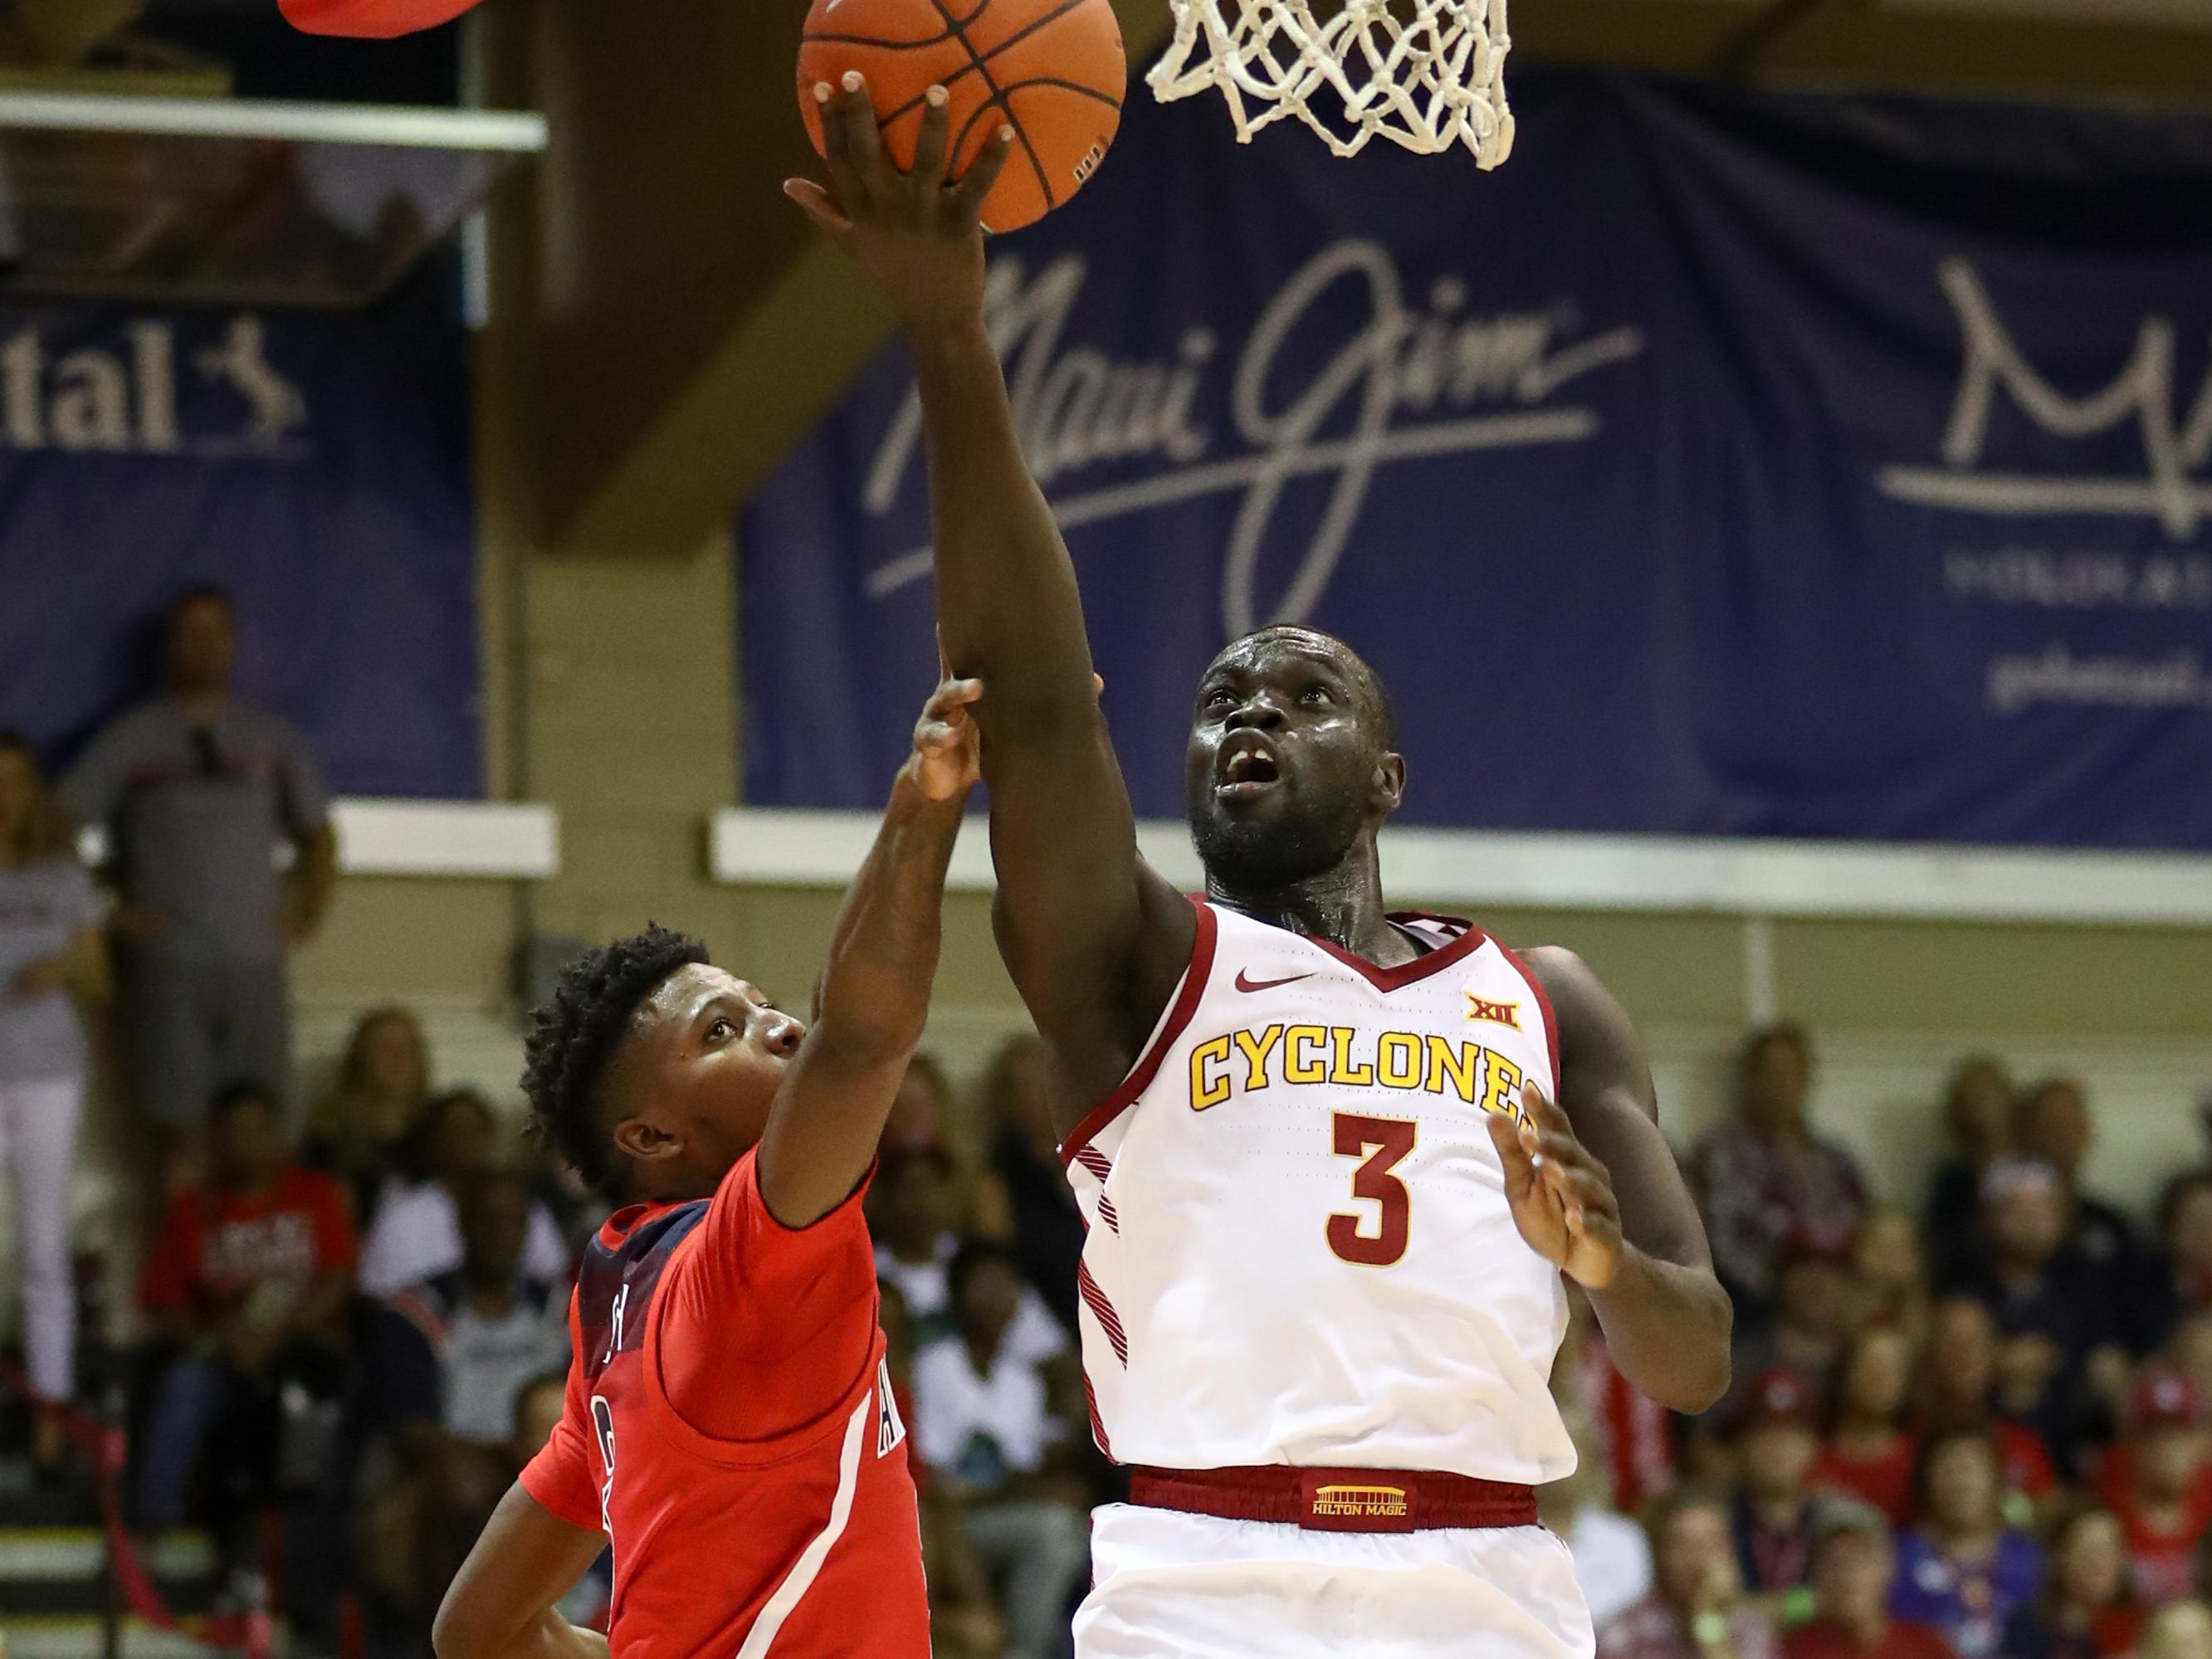 Marial Shayok #3 of the Iowa State Cyclones lays the ball in as he is guarded by Dylan Smith #3 of the Arizona Wildcats during the first half of the game at Lahaina Civic Center on November 19, 2018 in Lahaina, Hawaii.